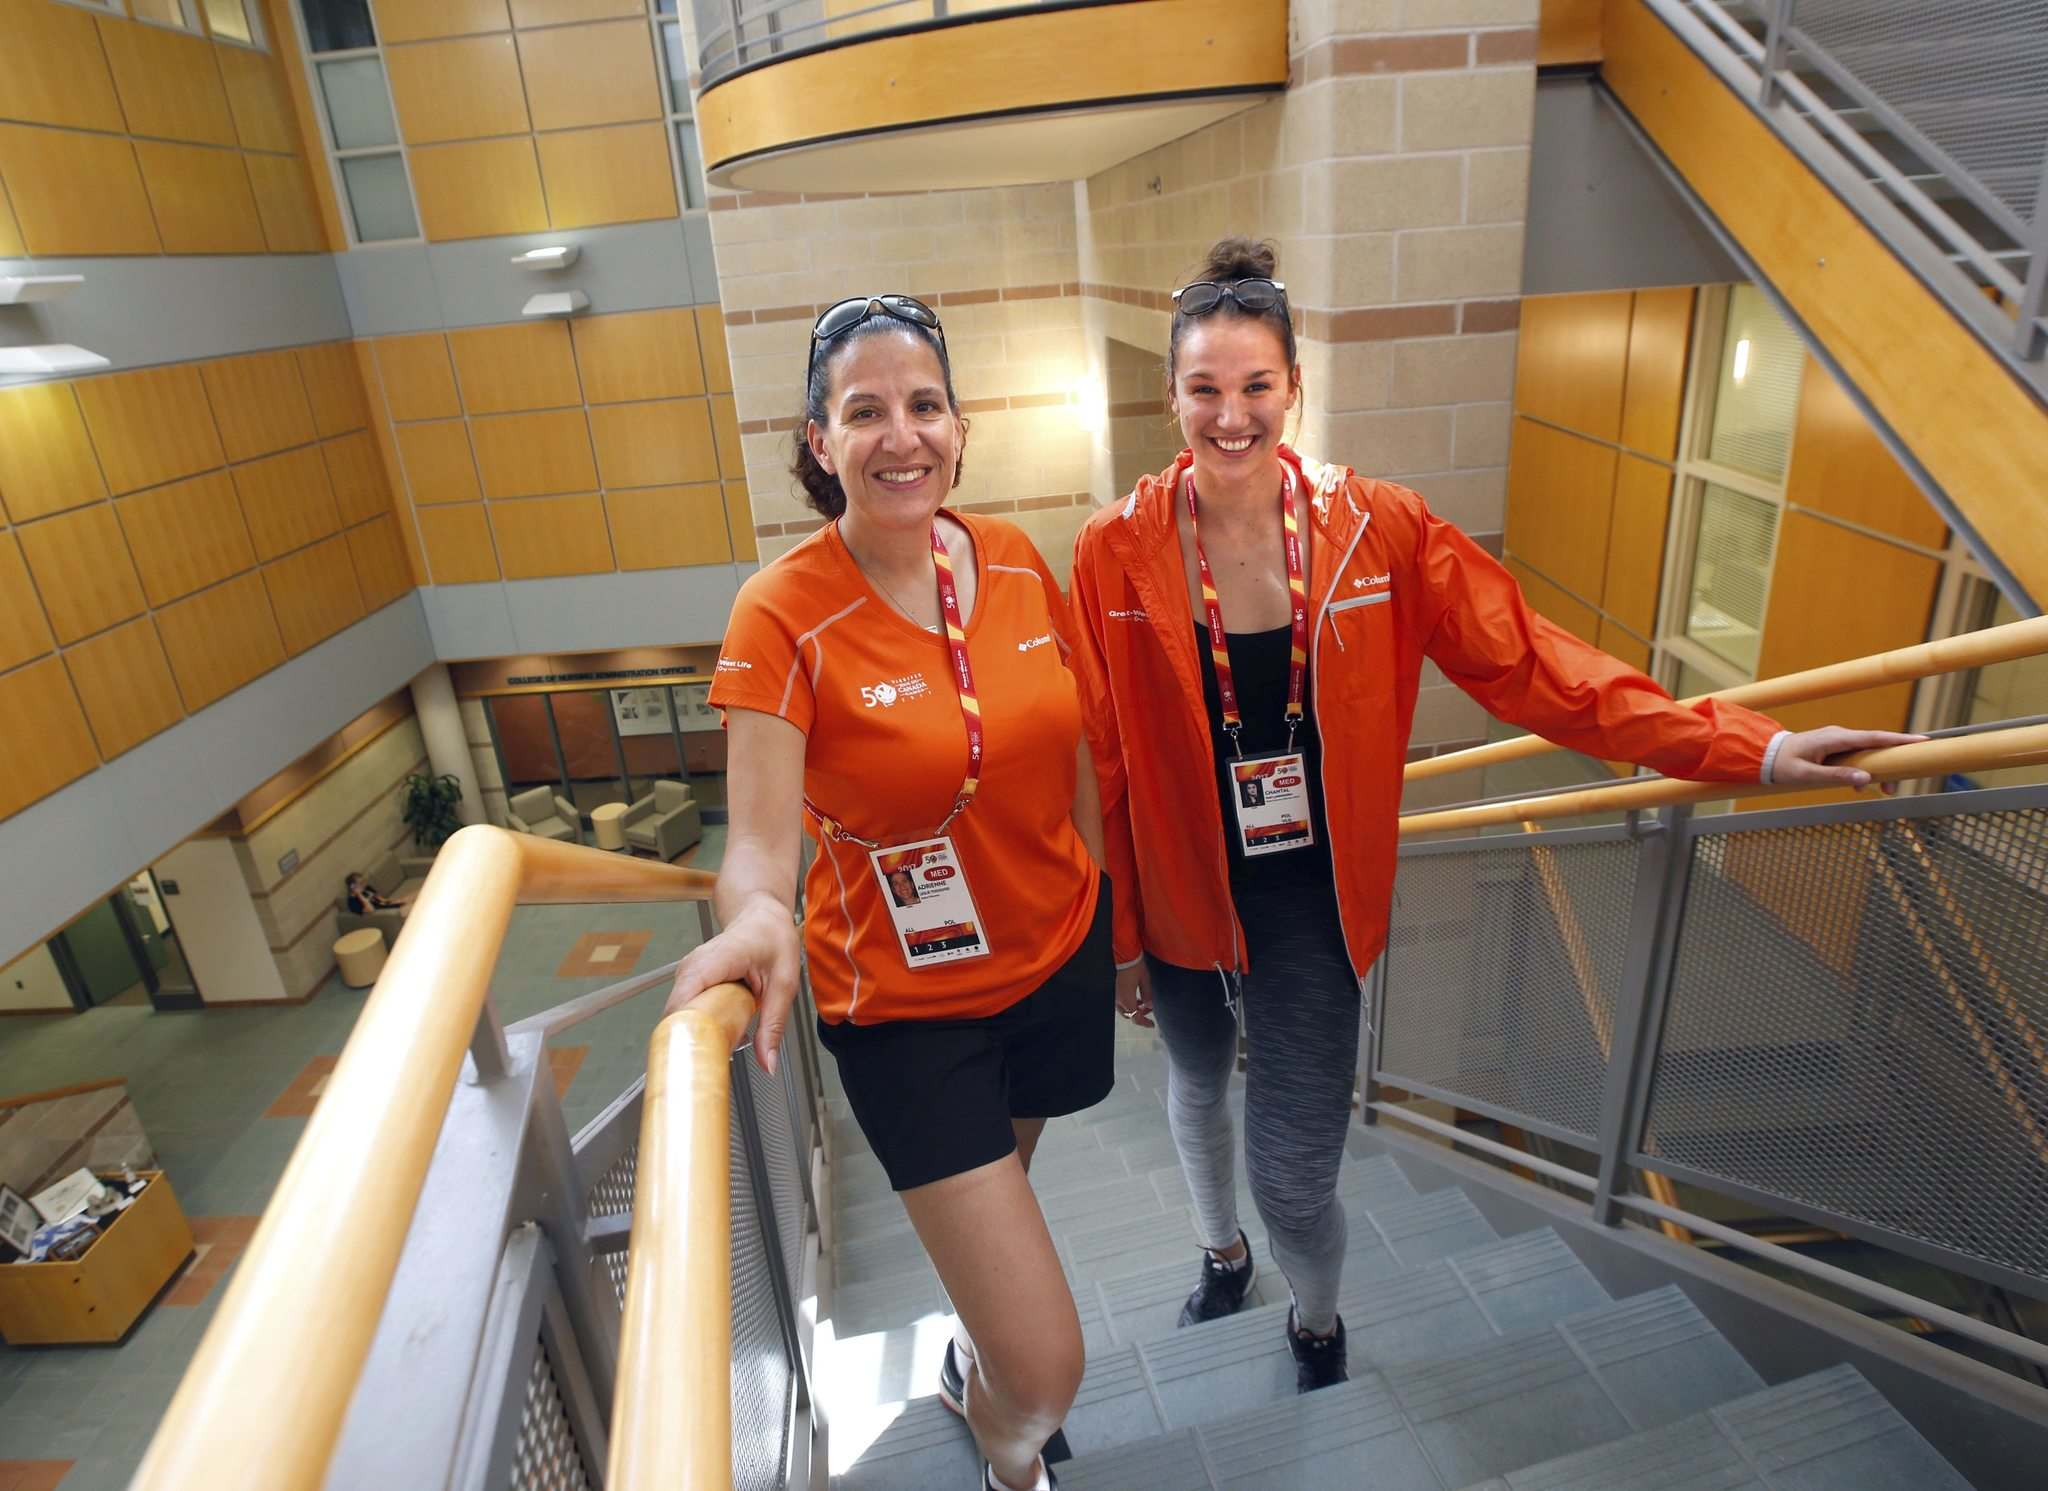 WAYNE GLOWACKI / WINNIPEG FREE PRESS</p><p>At left, Dr. Adrienne Leslie-Toogood (the Canadian Sport Centre Manitoba&#39;s lead psychologist) and Olympic swimmer and Manitoban Chantal Van Landeghem in the Helen Glass Centre for Nursing on the U of M campus that is part of the Canada Summer Games Athletes Village.</p>